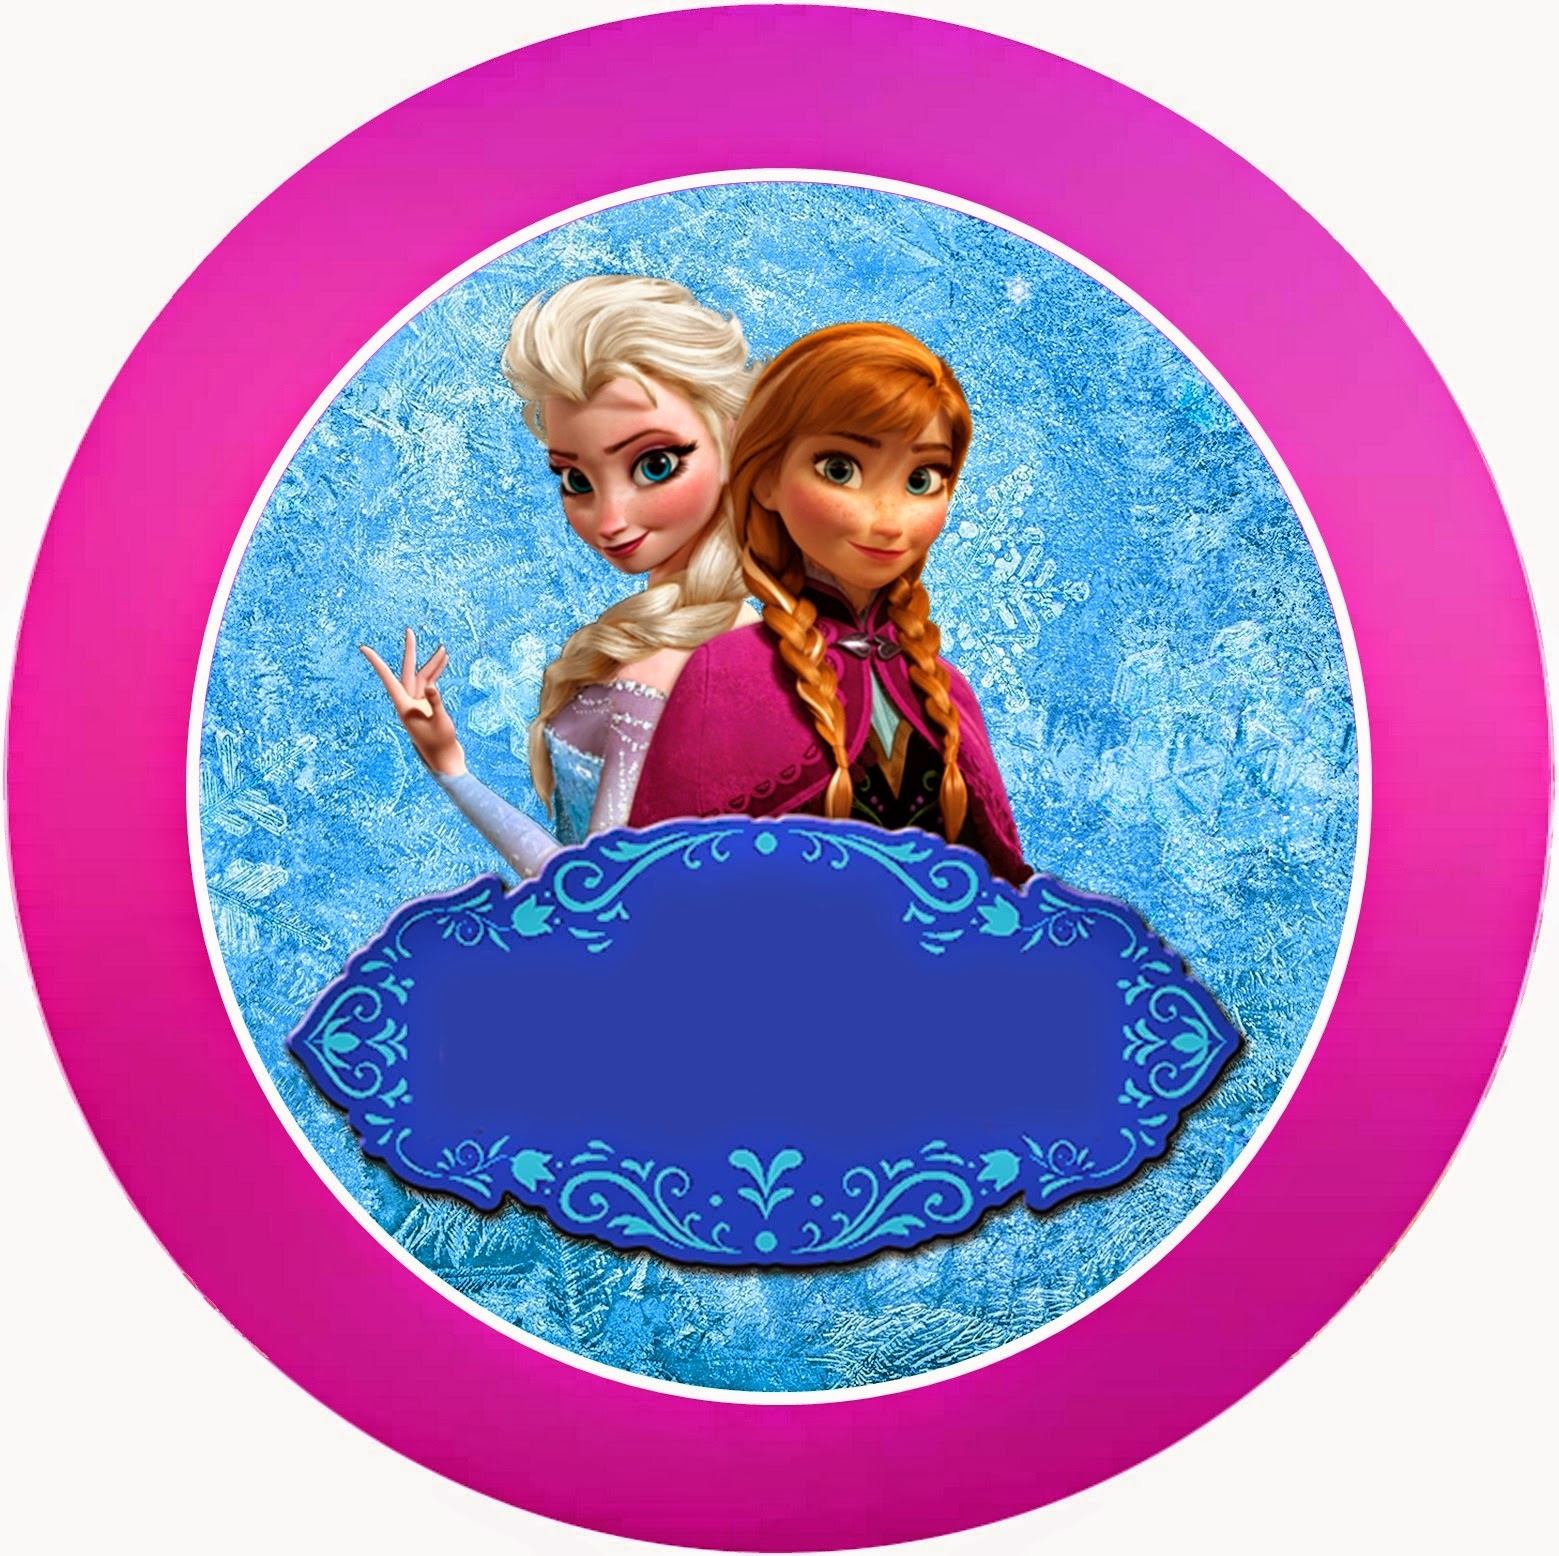 frozen free printable kit with fucsia border oh my fiesta in